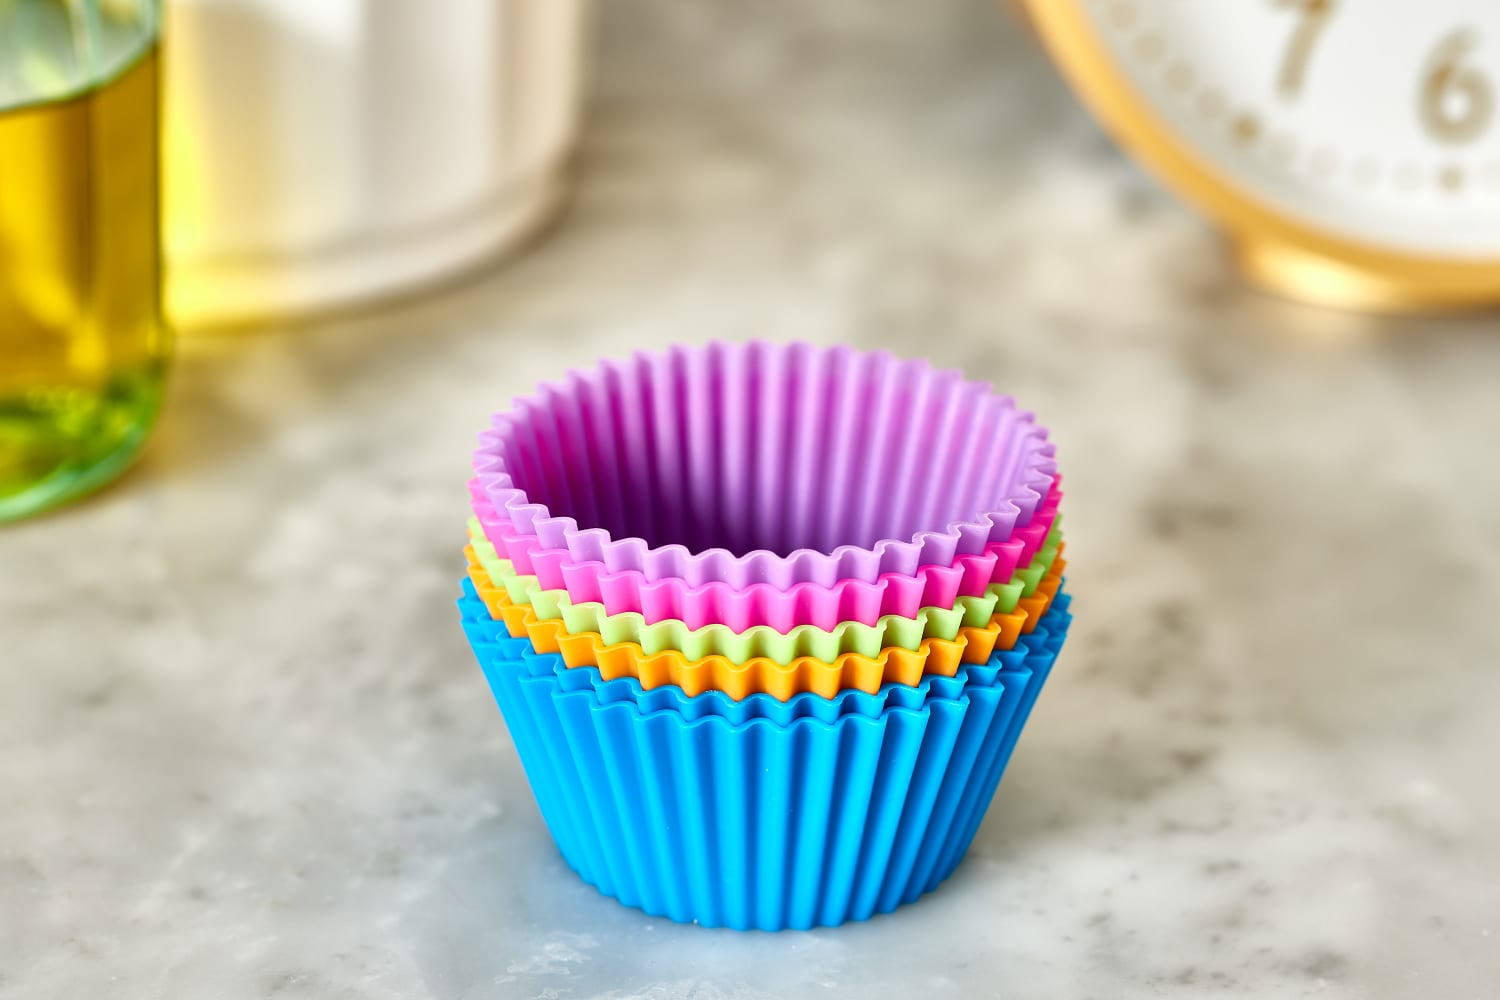 11 Surprising Ways to Stay Clean and Organized with Silicone Cupcake Liners